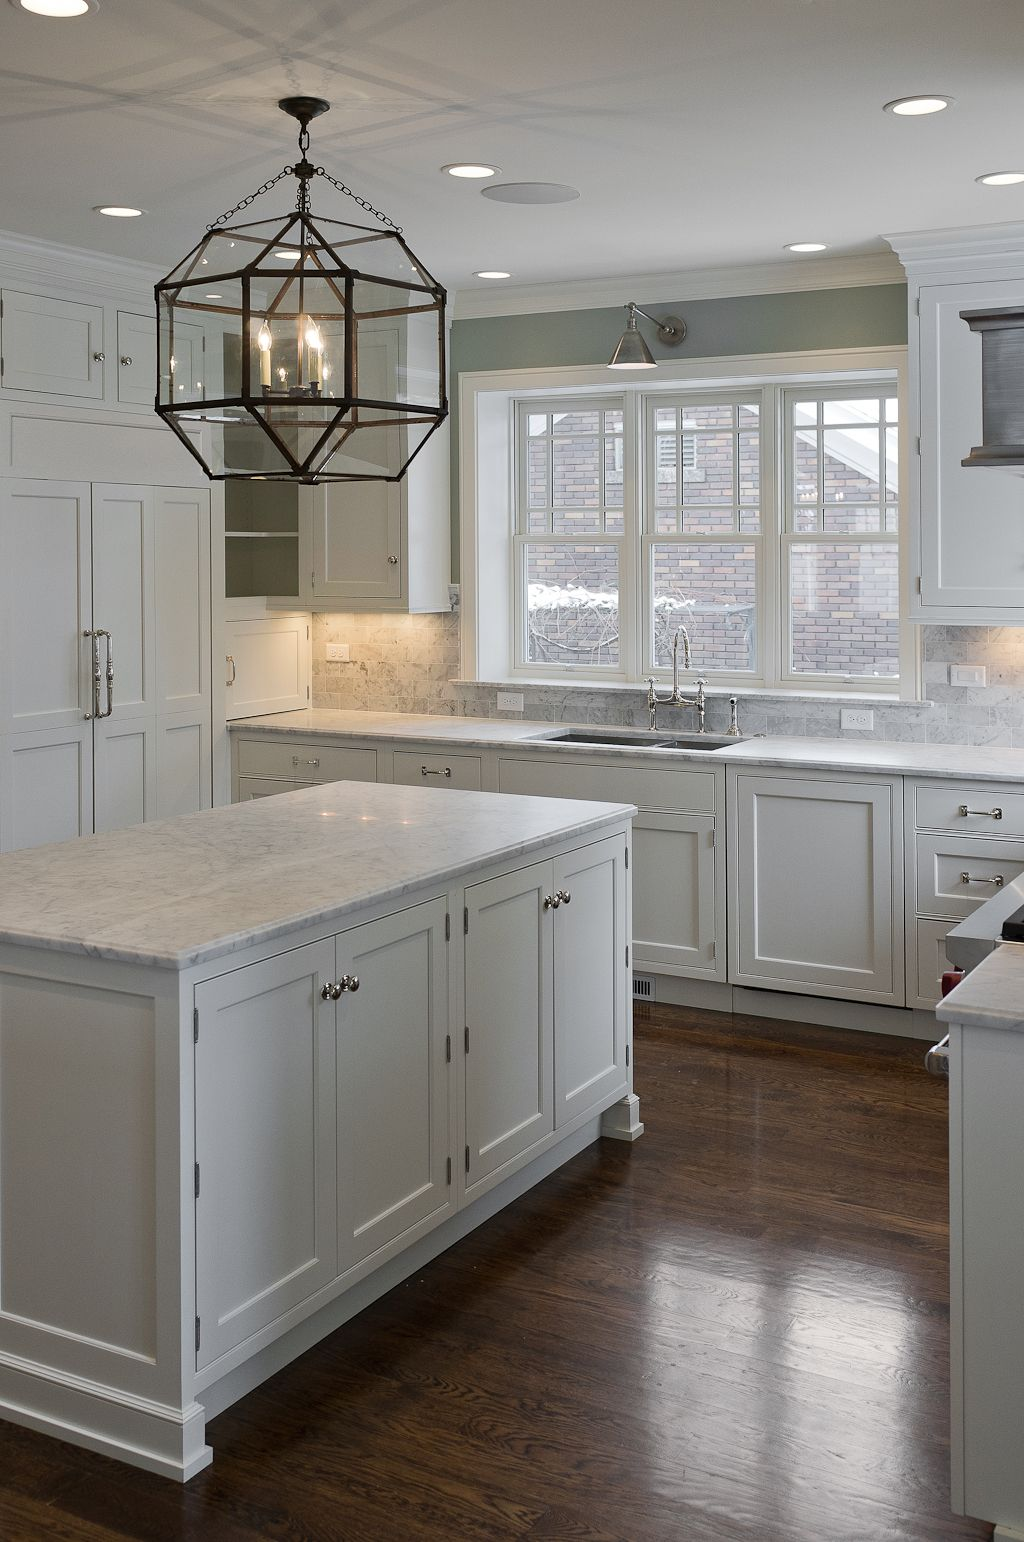 Best Kitchen Gallery: 30 Spectacular White Kitchens With Dark Wood Floors Pinterest of Beige And White Kitchens on rachelxblog.com